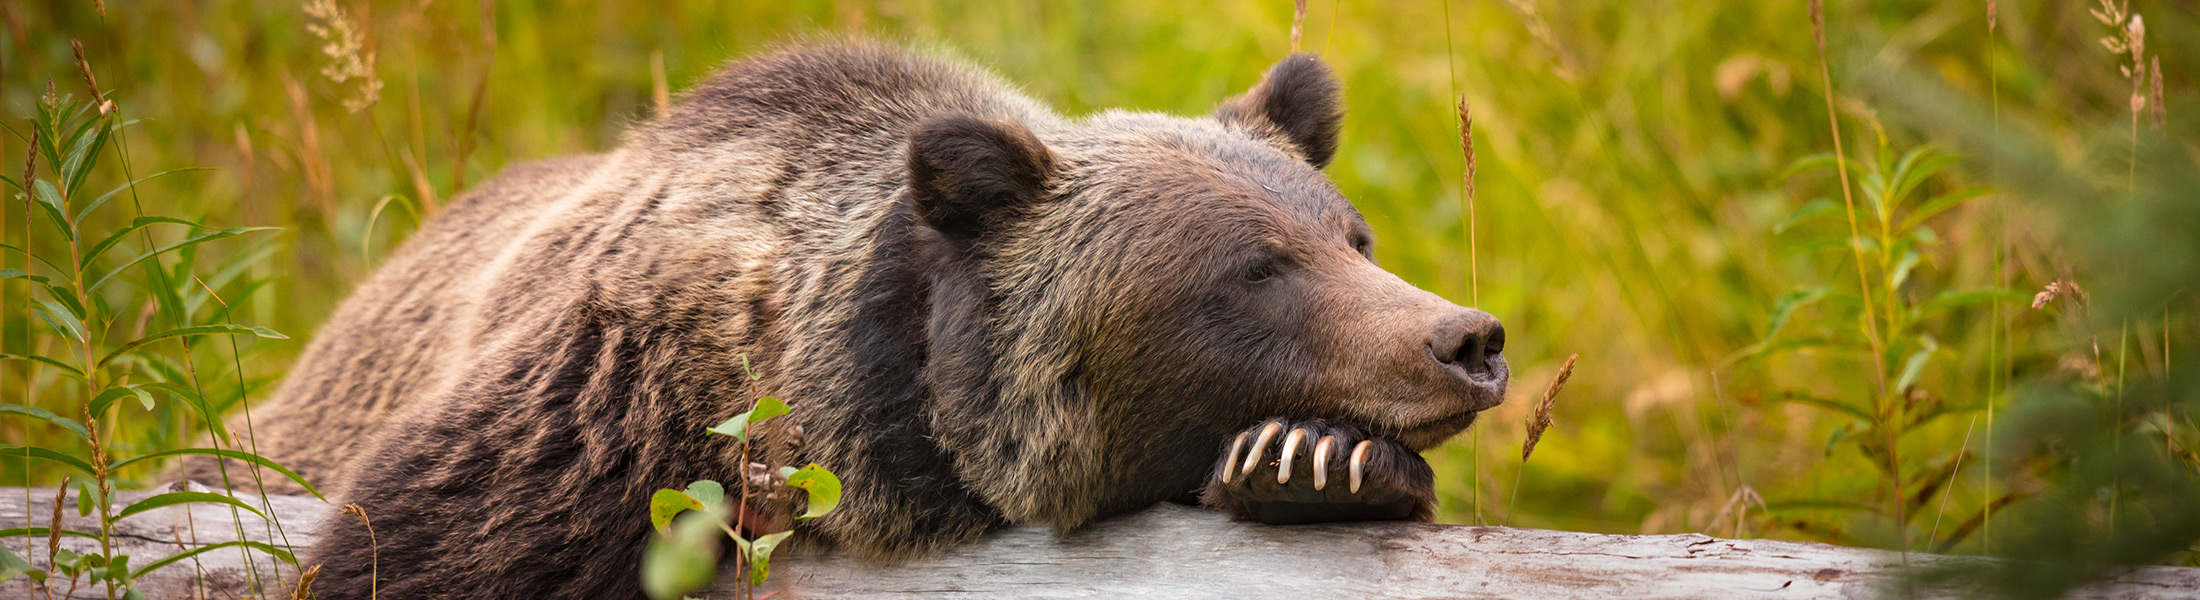 Bear sleeping in British Columbia